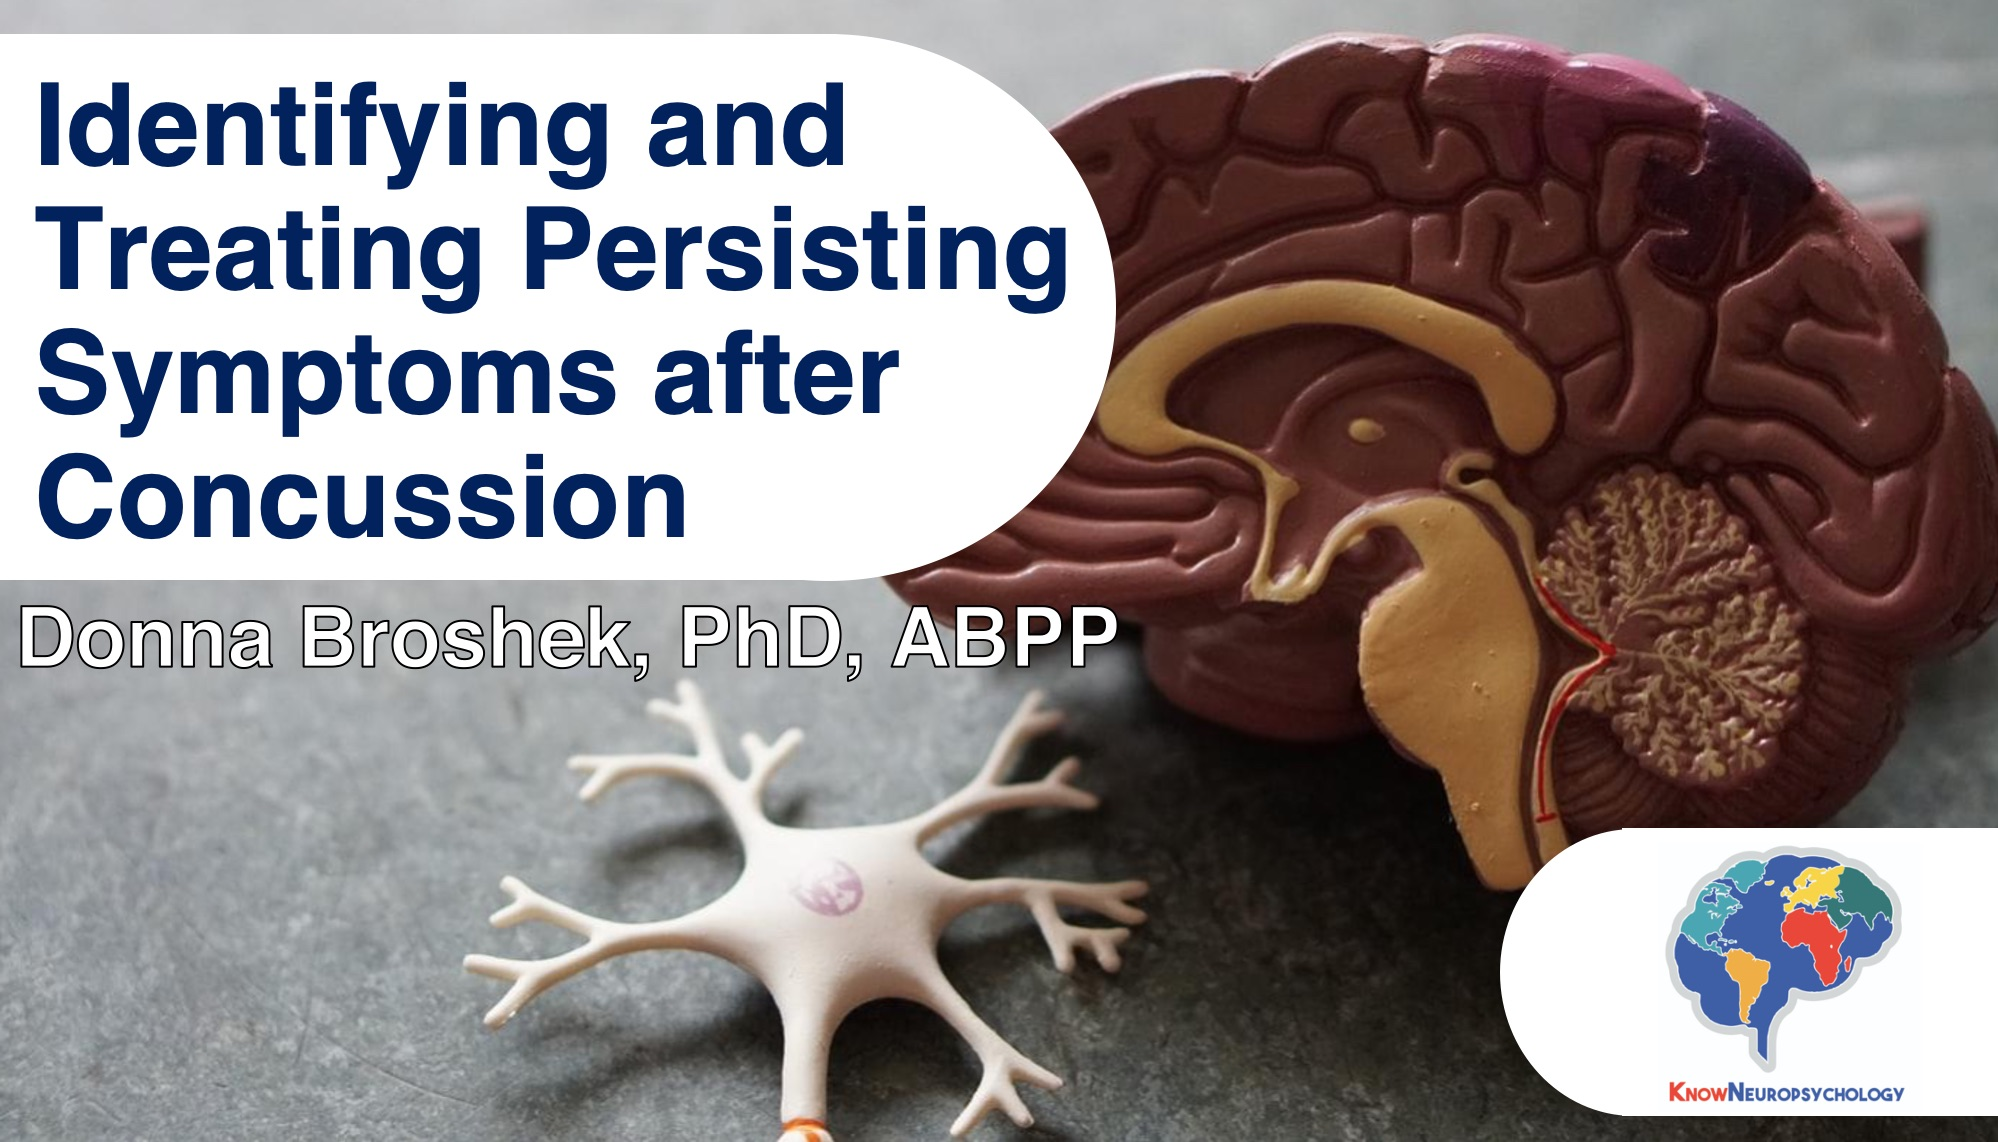 Identifying and treating persisting symptoms after concussion by Dr. Donna Broshek